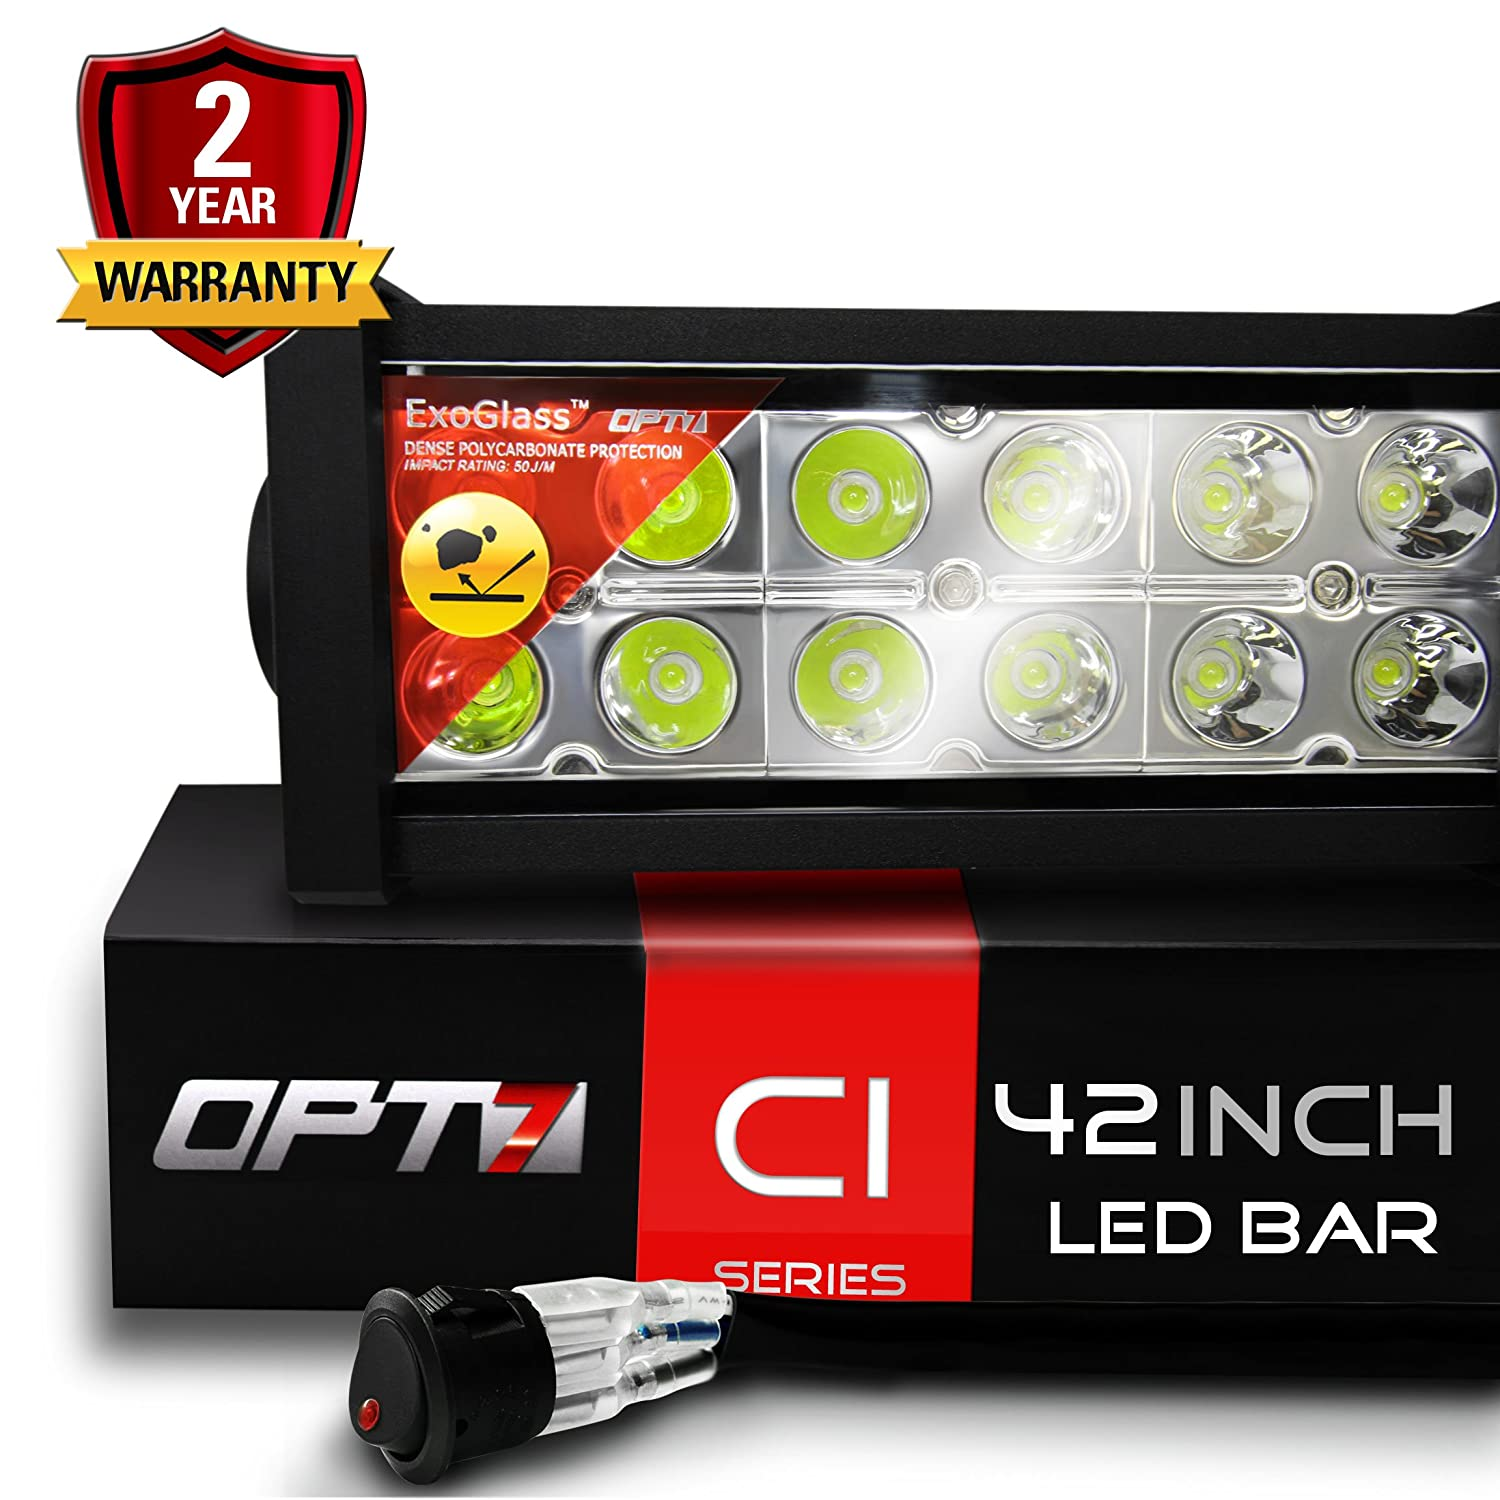 "Amazon.com: OPT7 C1 42"" Off-Road LED Light Bar w/ Wire Harness and Switch -  240w Spot Auxiliary Lamp: Automotive"